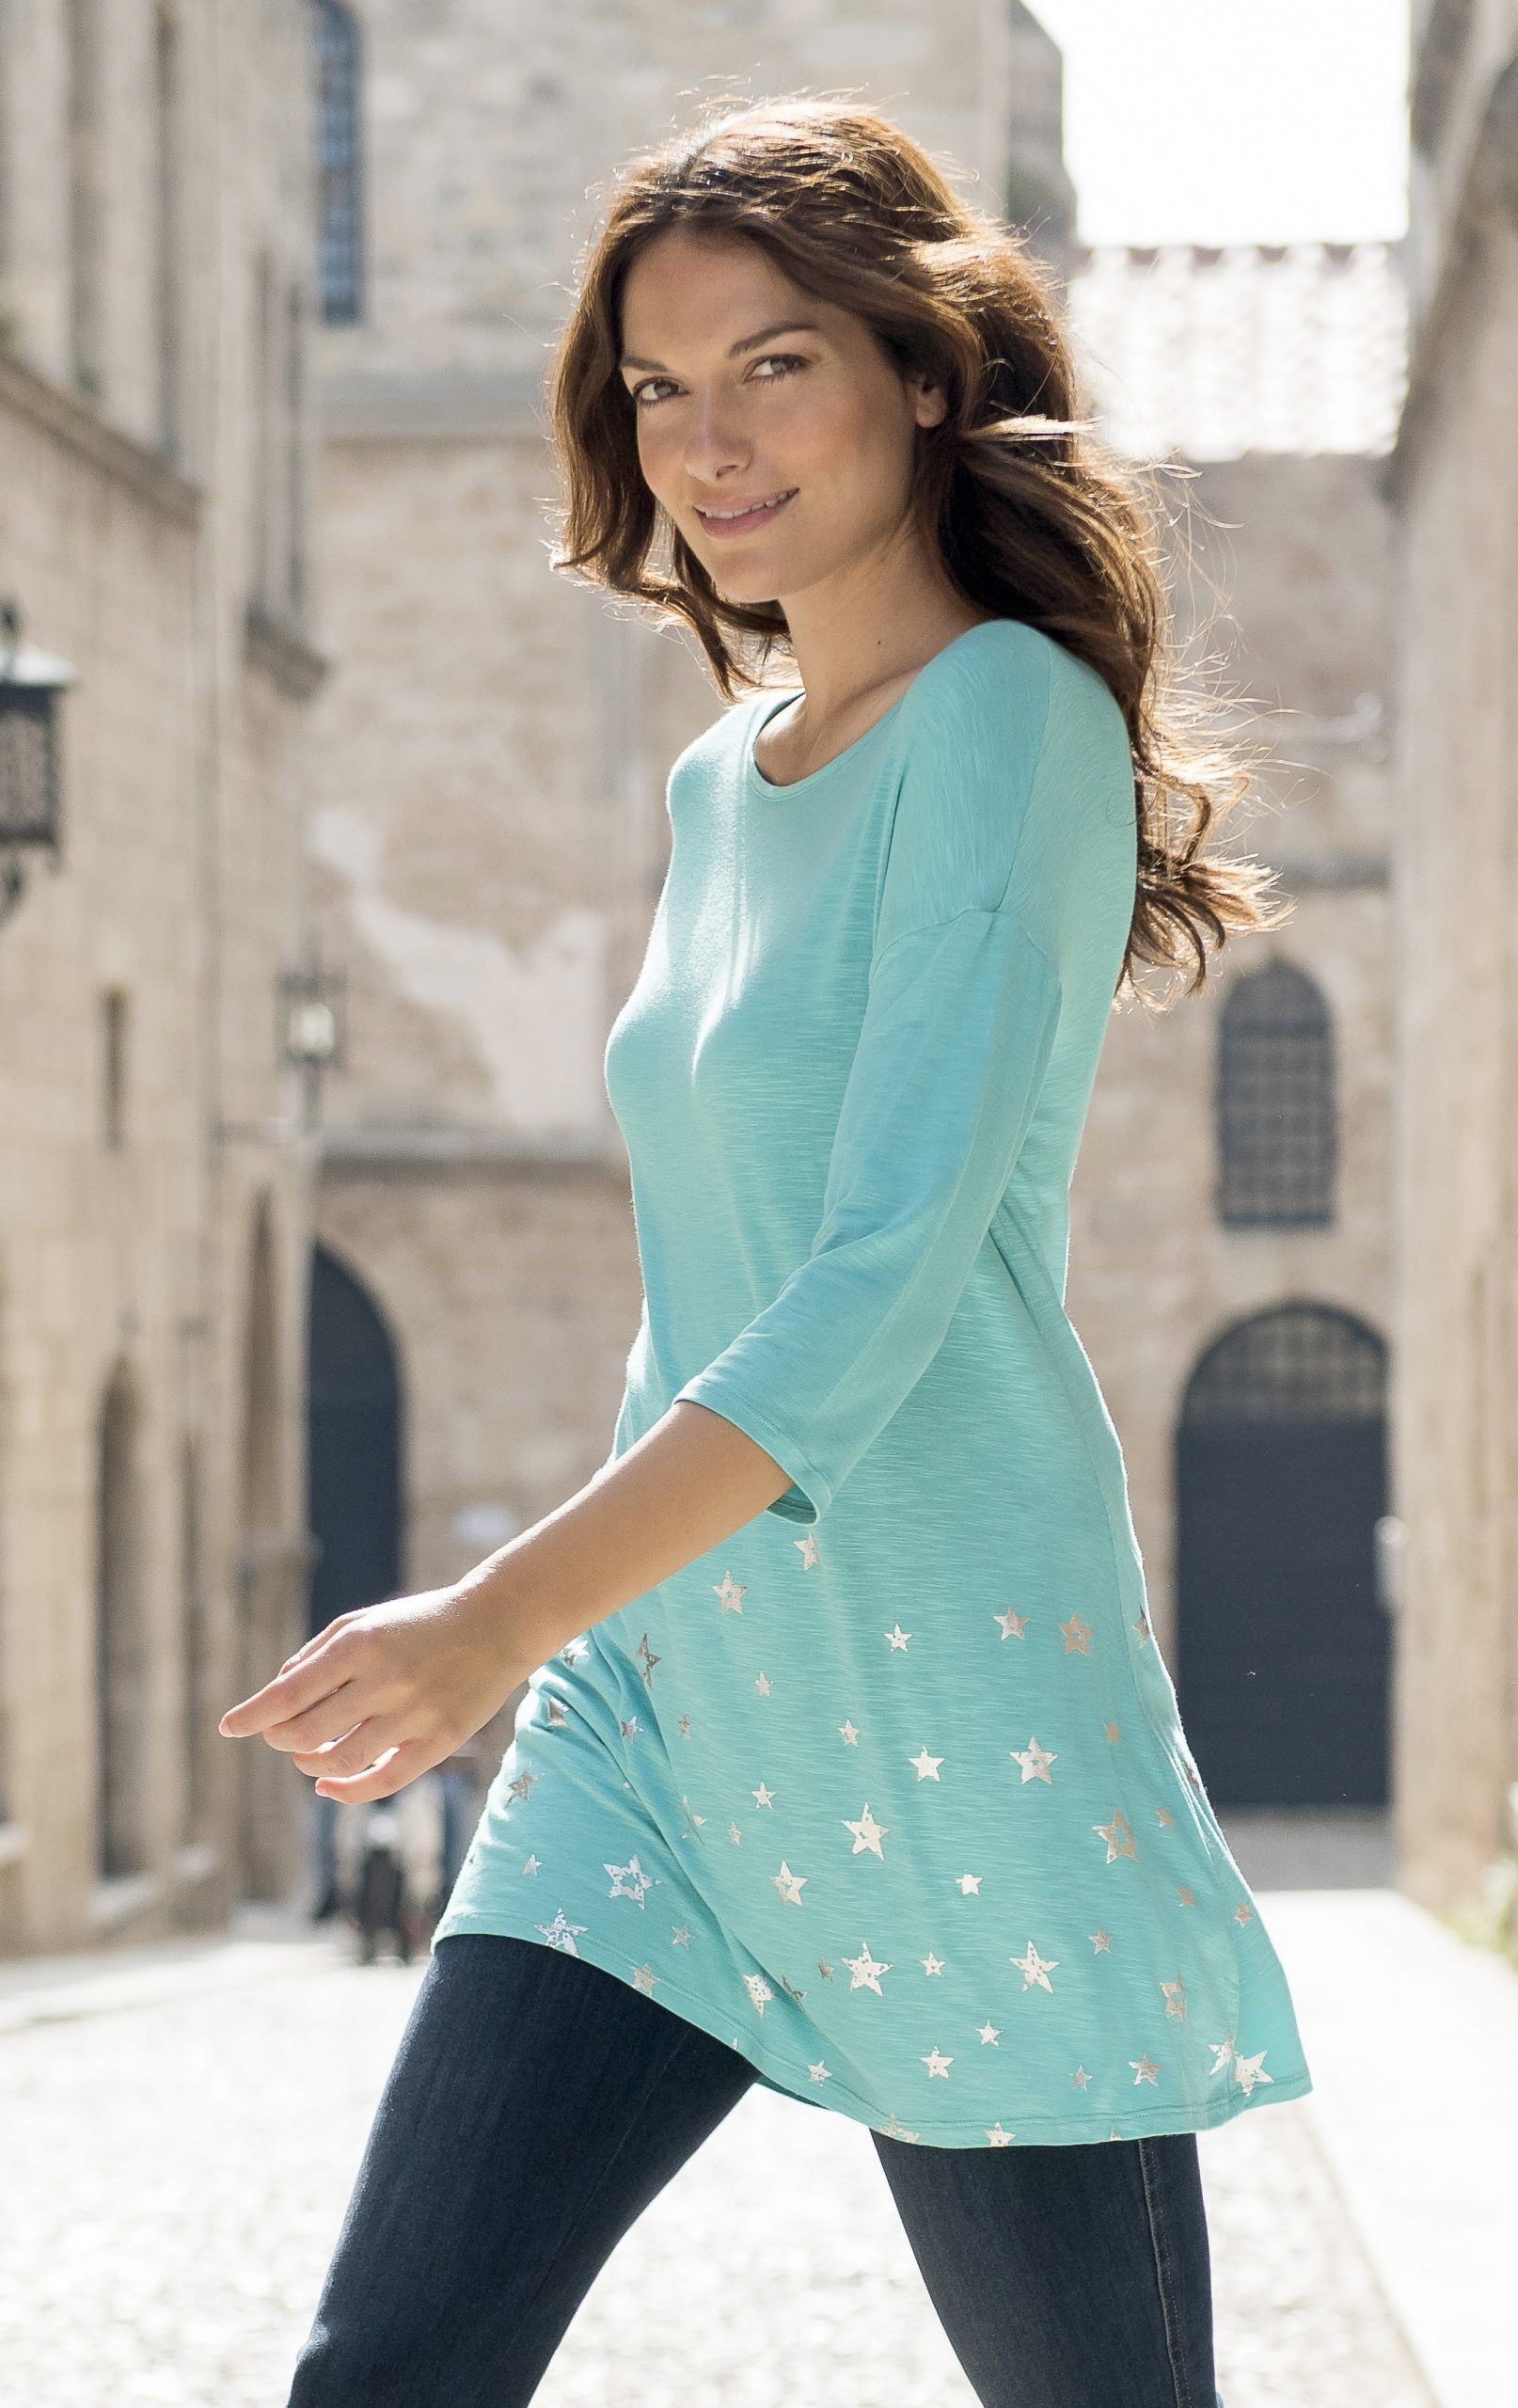 Marble Tunic Silver Stars Print Turquoise TURQUOISE - 14